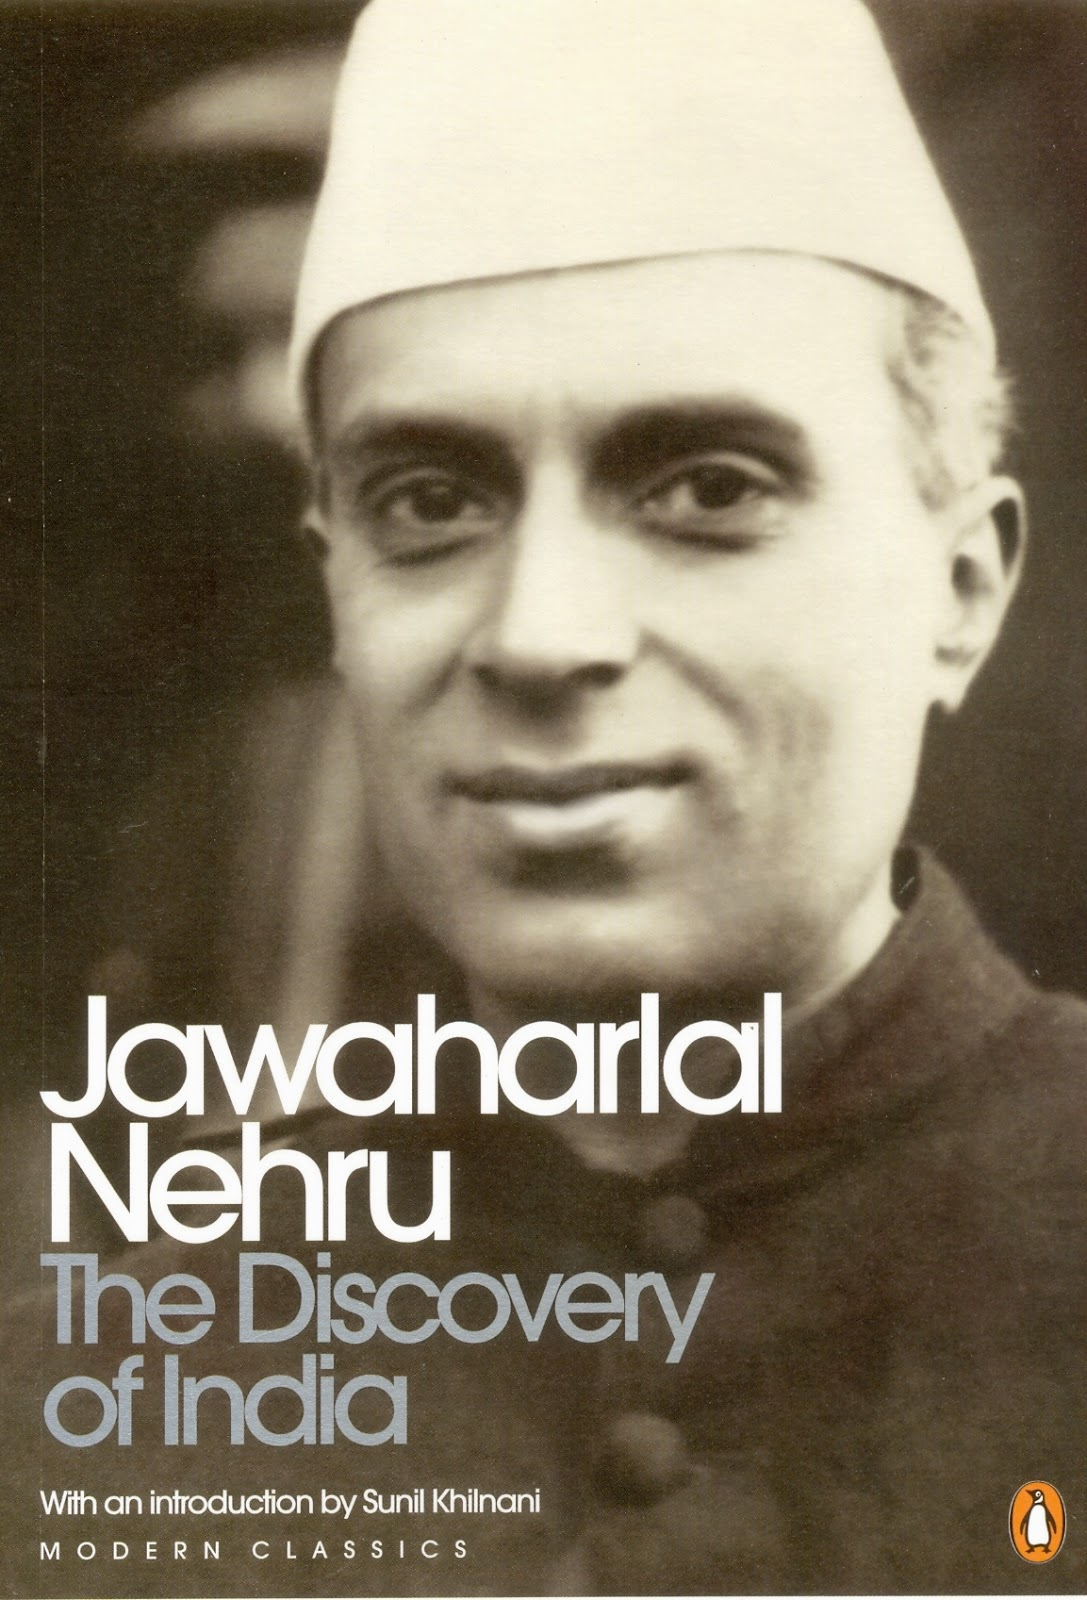 write an essay on jawaharlal nehru in hindi acirc % original english essay book online